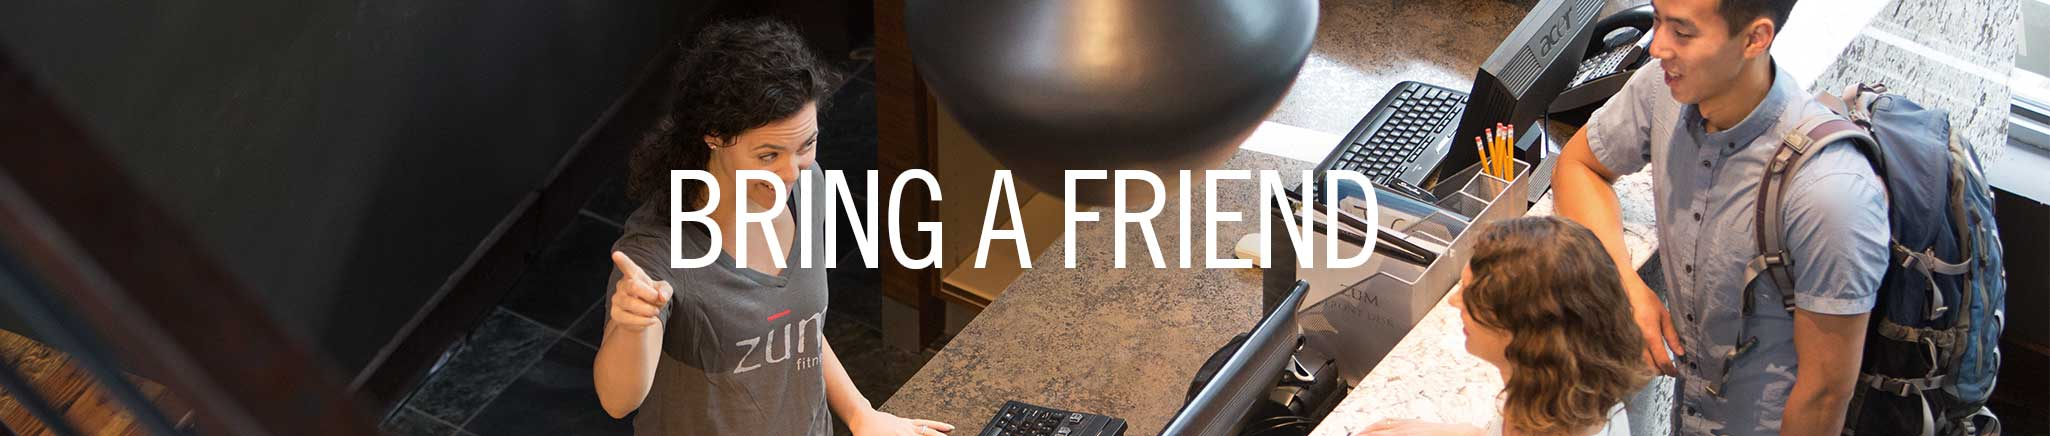 Bring A Friend to ZUM Fitness in the heart of downtown Seattle